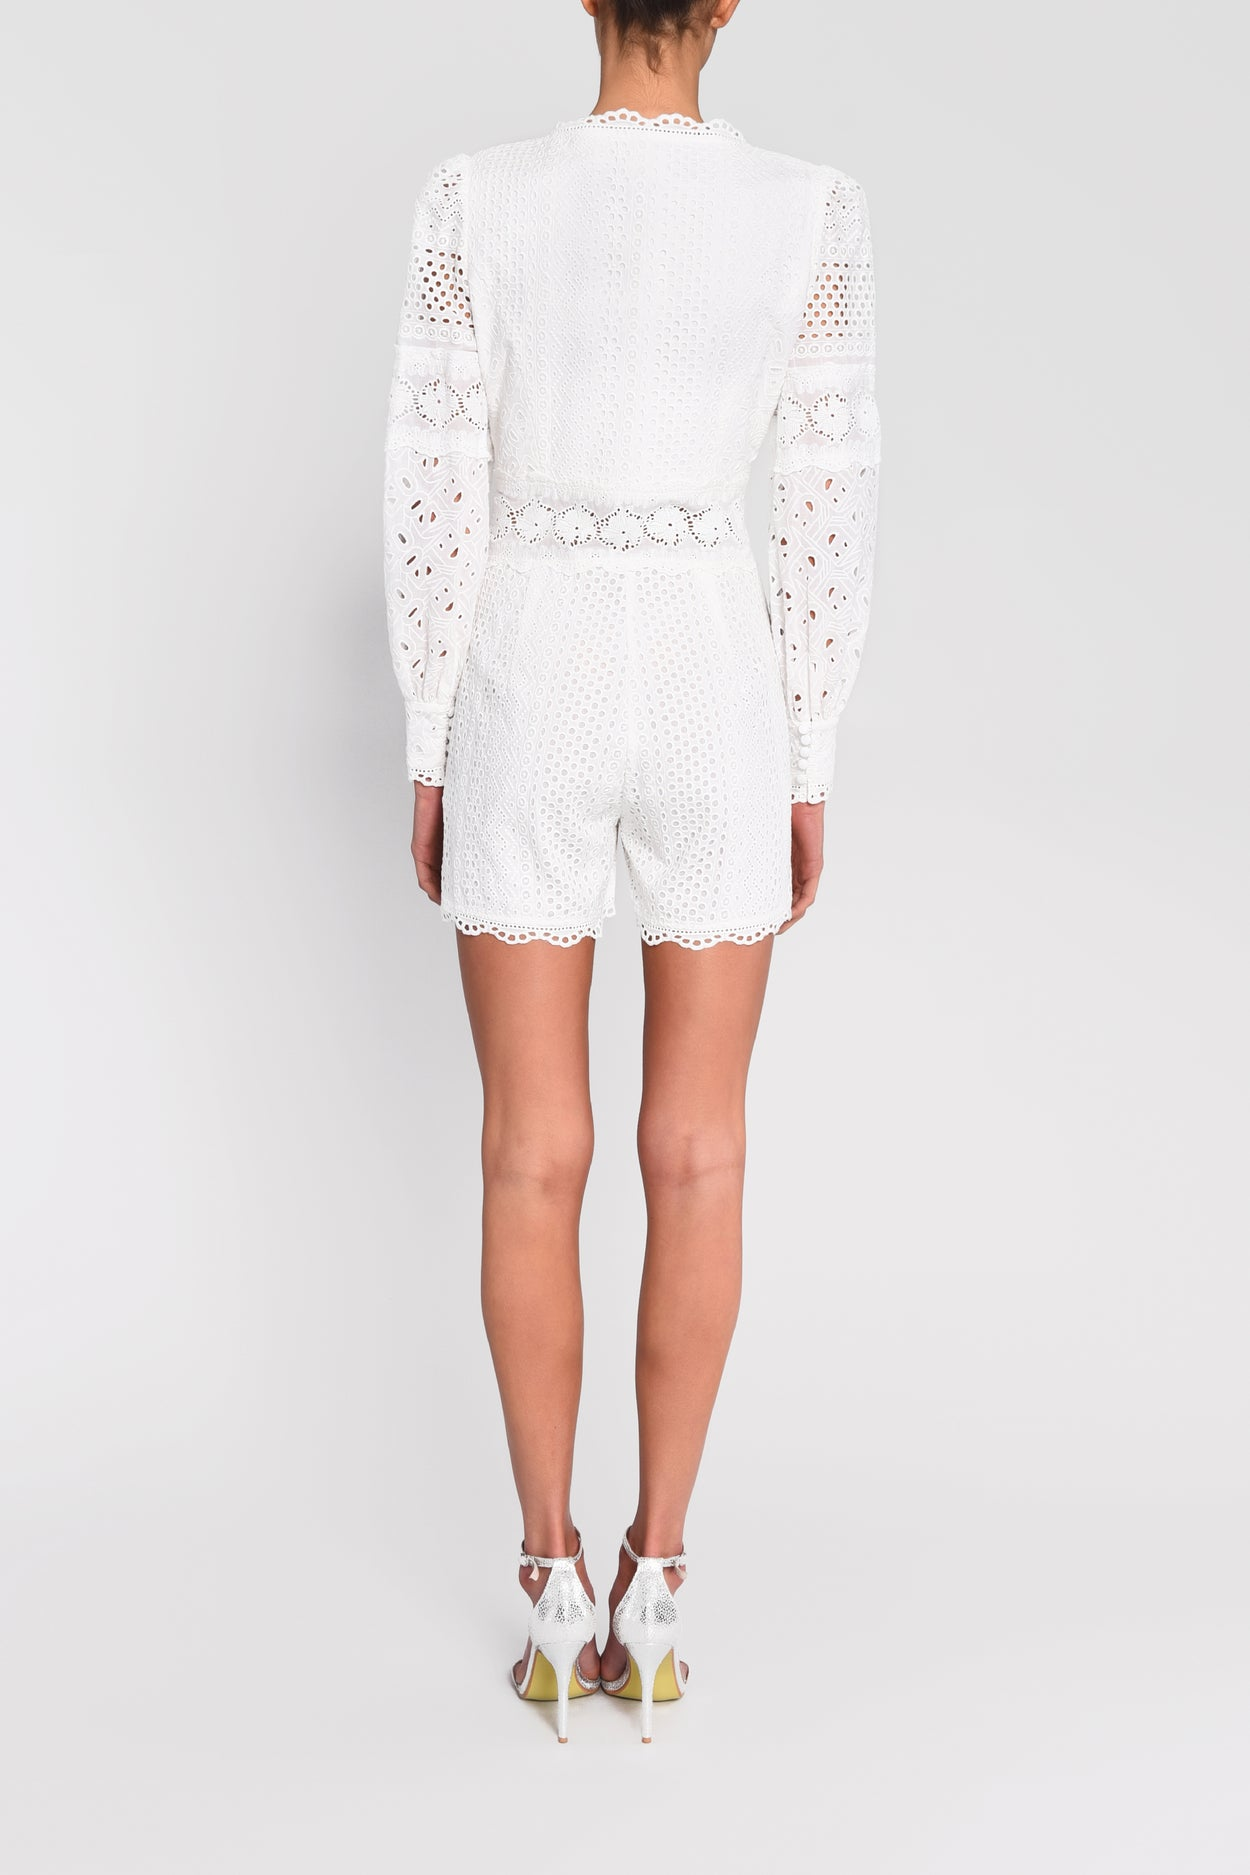 True Decadence White Broderie Long Sleeve Playsuit